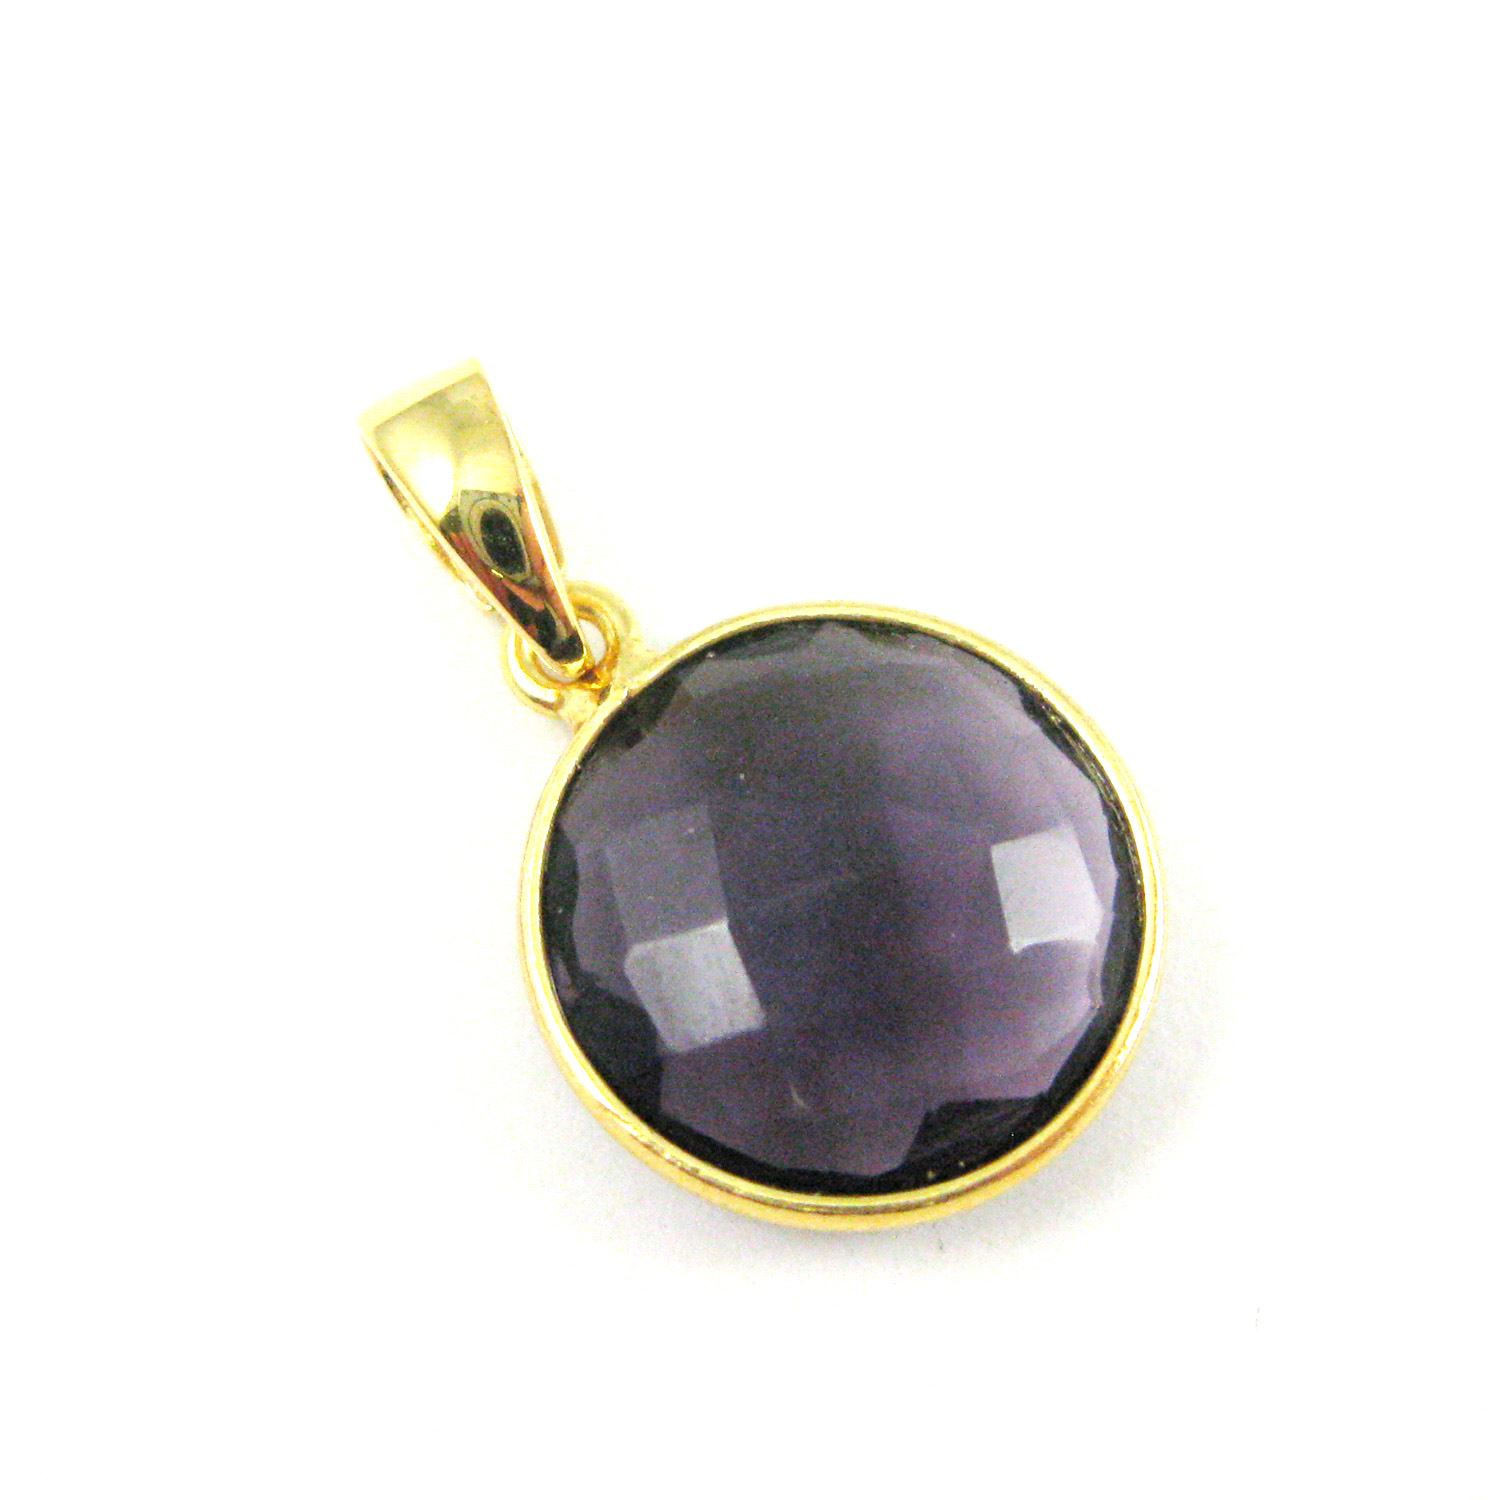 Bezel Gemstone Pendant with Bail - Gold plated Sterling Silver Round Gem Pendant - Ready for Necklace - 24mm- Amethyst Quartz